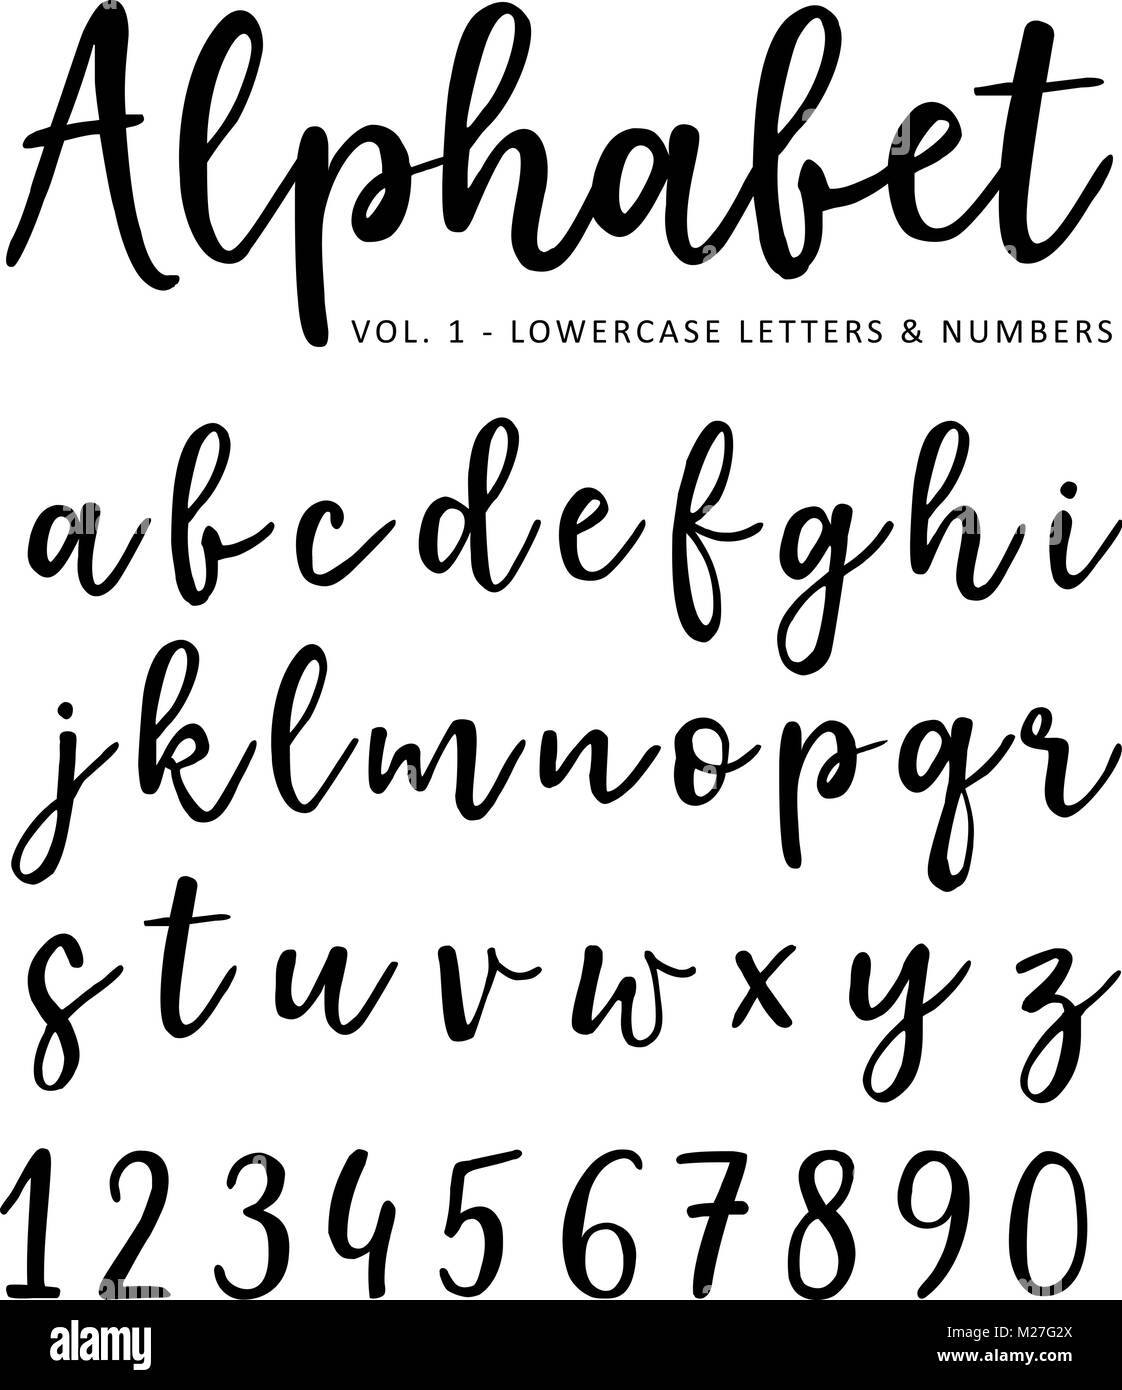 Hand Drawn Vector Alphabet Brush Script Font Isolated Lower Case Letters And Numbers Written With Marker Or Ink Calligraphy Lettering